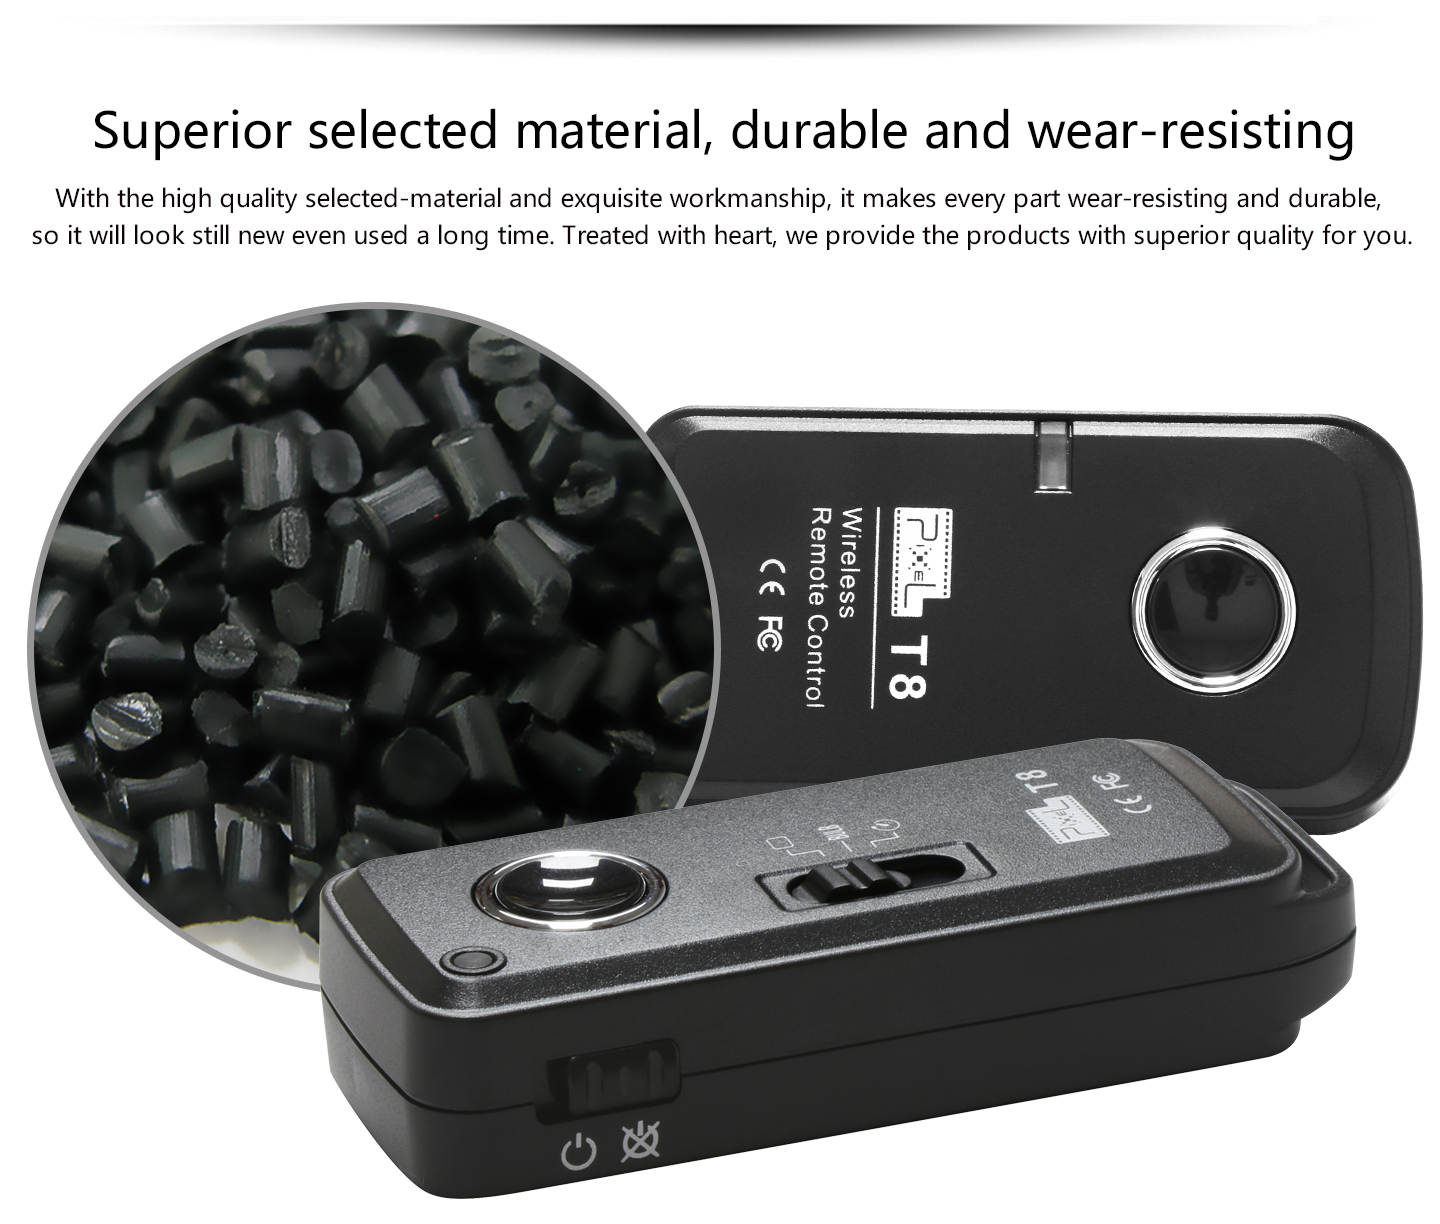 Superior selected material, durable and wear-resisting